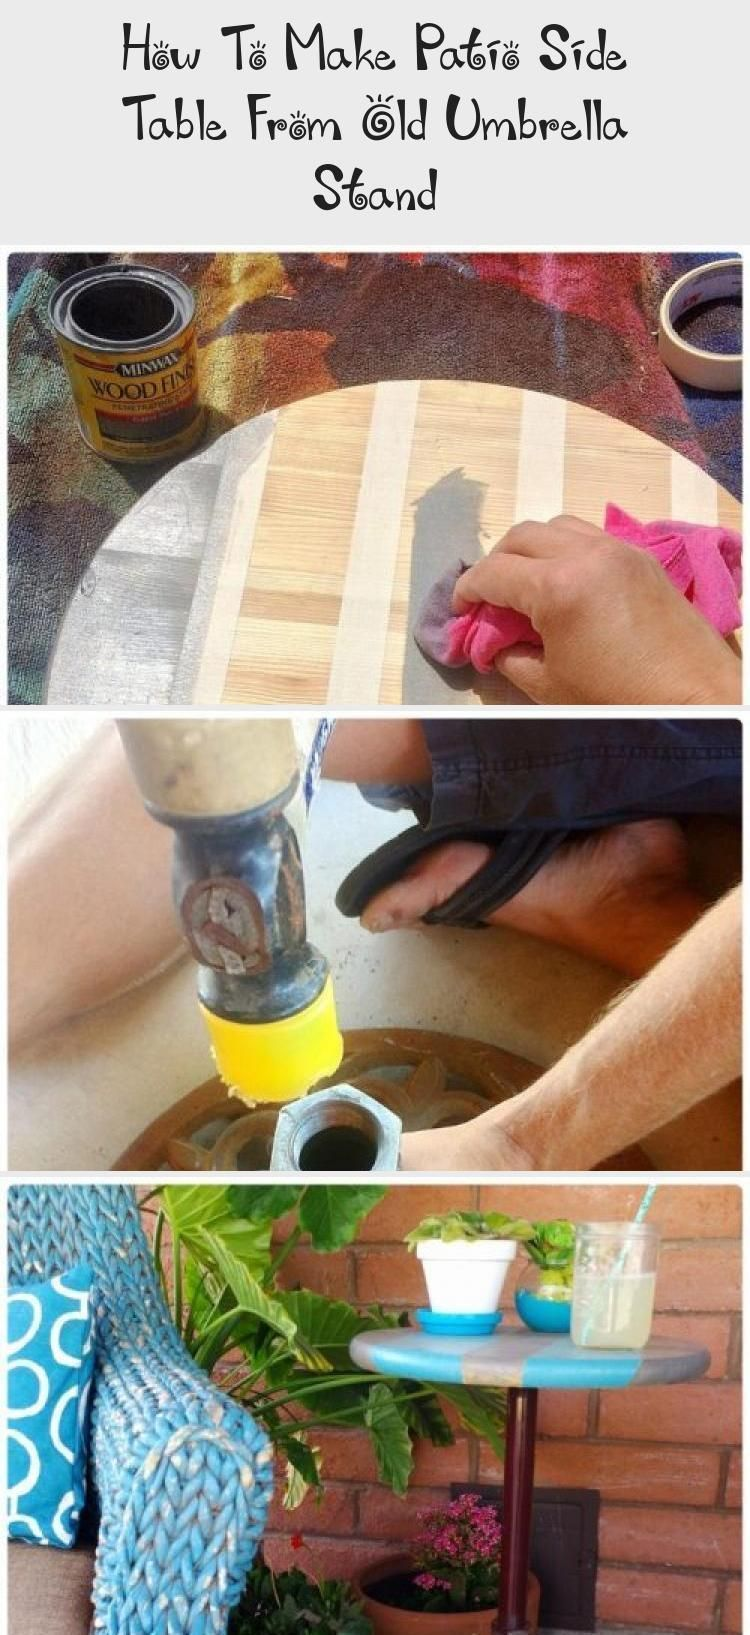 How To Make Patio Side Table From Old Umbrella Stand #patioumbrellastand Re-purpose umbrella stand into DIY patio side table for easy garden decor. How to build an outdoor table easily. #gardendecorPallet #gardendecorVideos #gardendecorGlass #Balconygardendecor #gardendecorWall #outdoorumbrellastand How To Make Patio Side Table From Old Umbrella Stand #patioumbrellastand Re-purpose umbrella stand into DIY patio side table for easy garden decor. How to build an outdoor table easily. #gardendecorP #patioumbrellastand